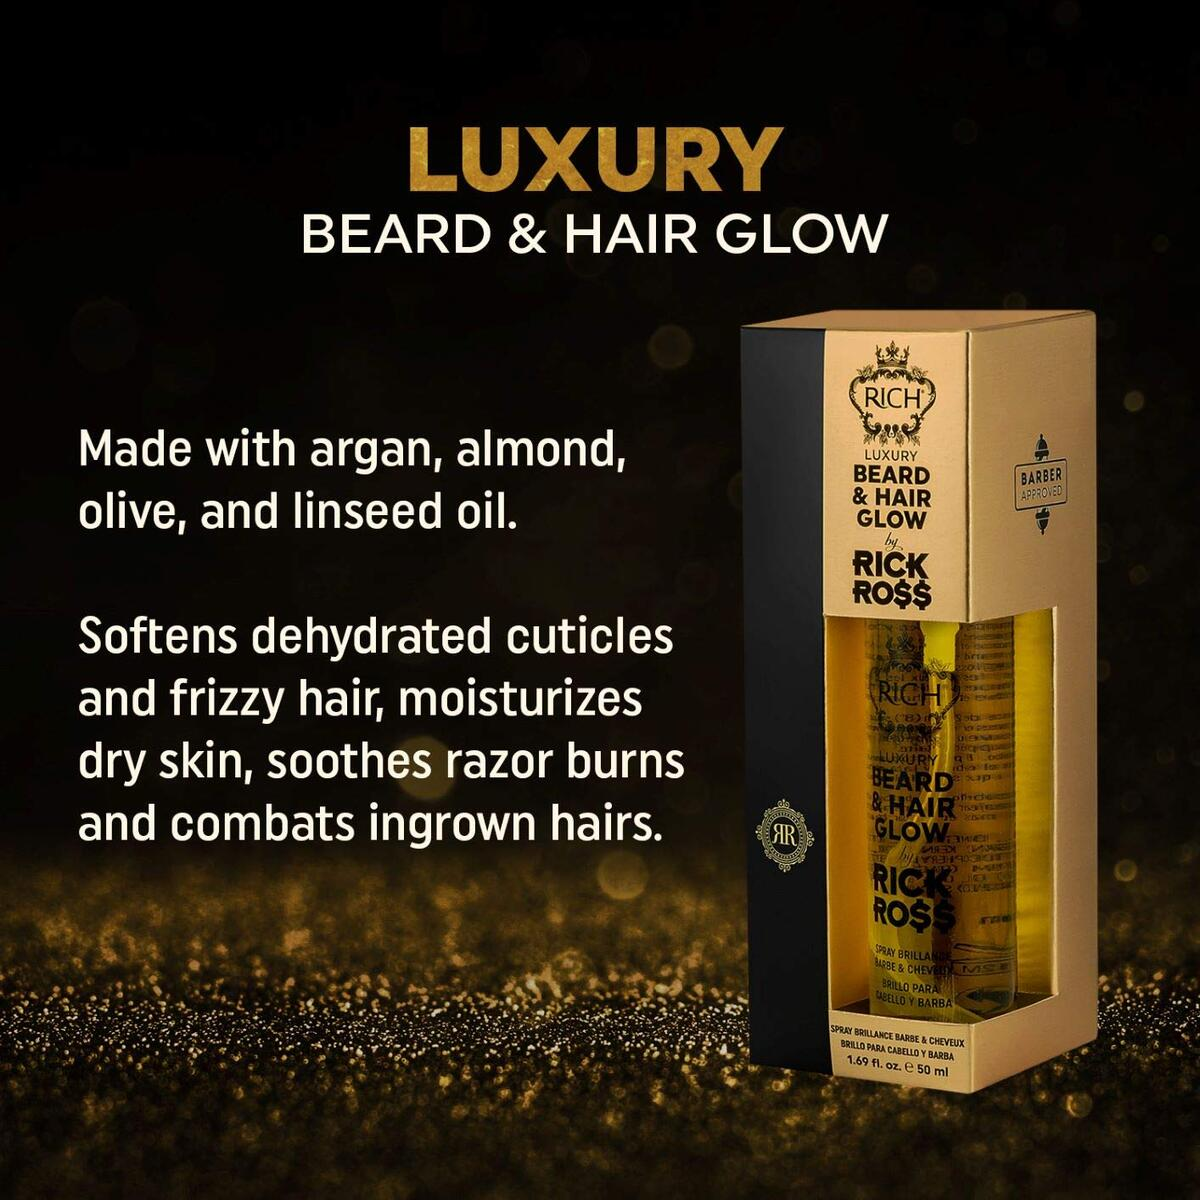 RICH by Rick Ross Luxury Beard & Hair Glow